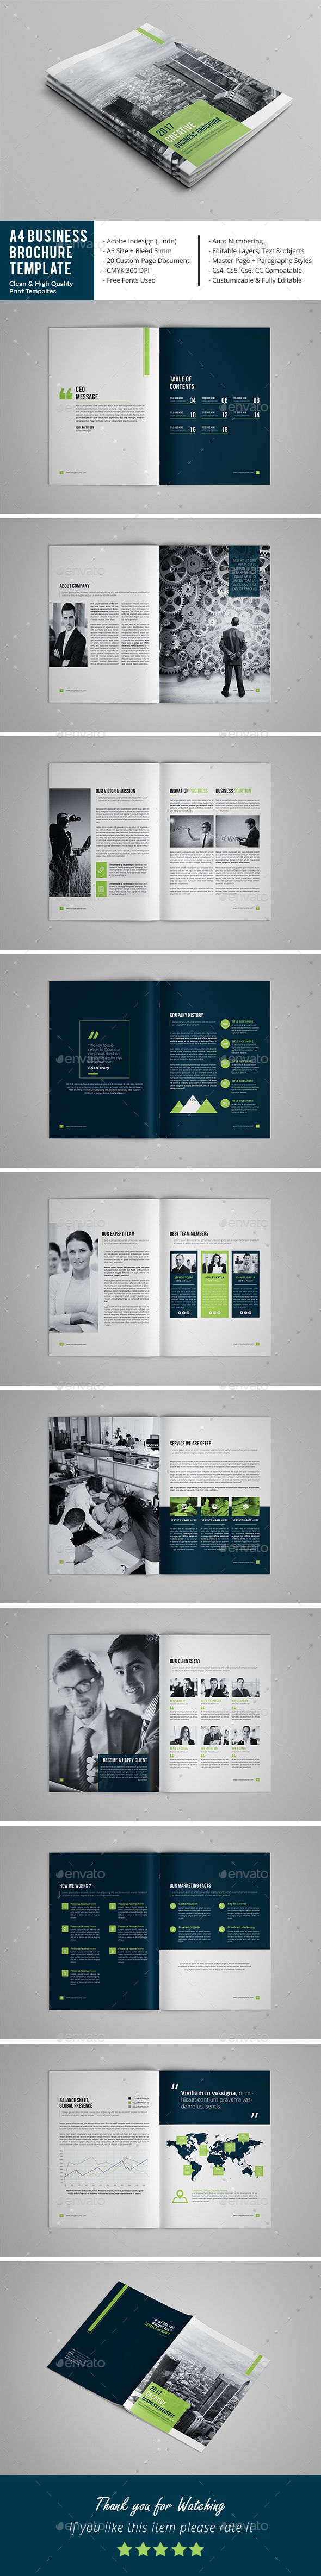 A4 Business Brochure Template | Editorial, Diseño editorial y Revistas